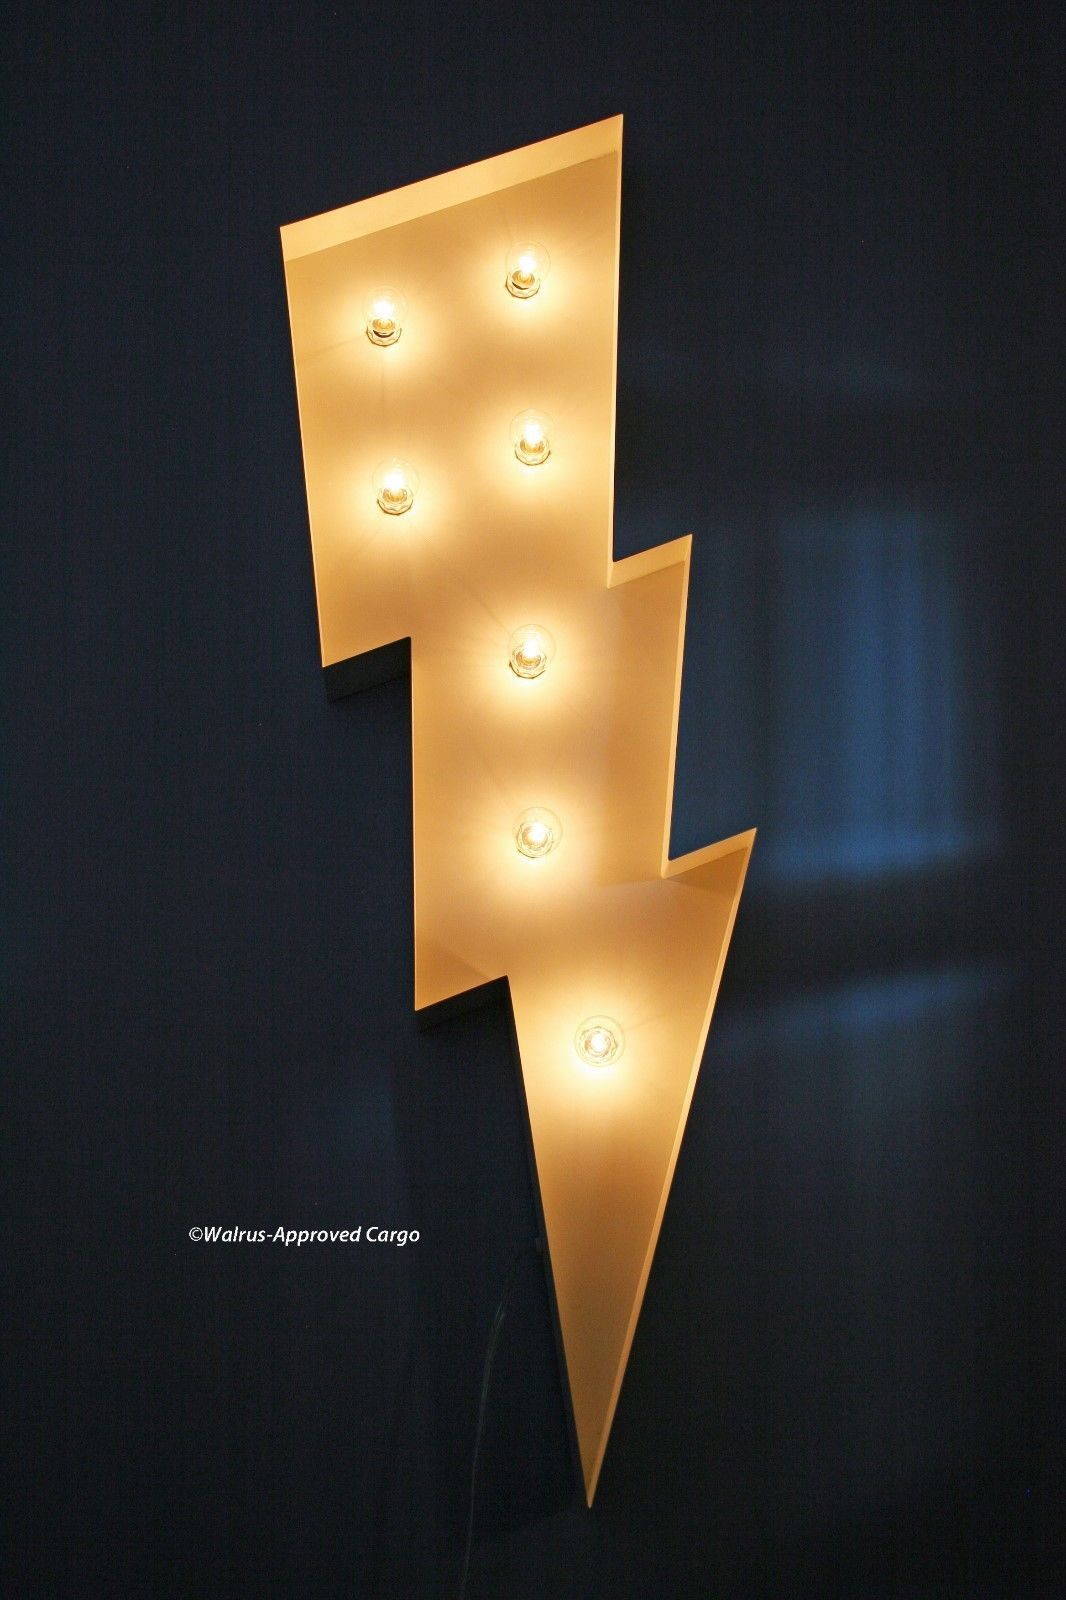 POTTERY BARN MARQUEE LIGHTNING BOLT -NIB- NOW UNIQUE DÉCOR CAN STRIKE ANY ROOM!